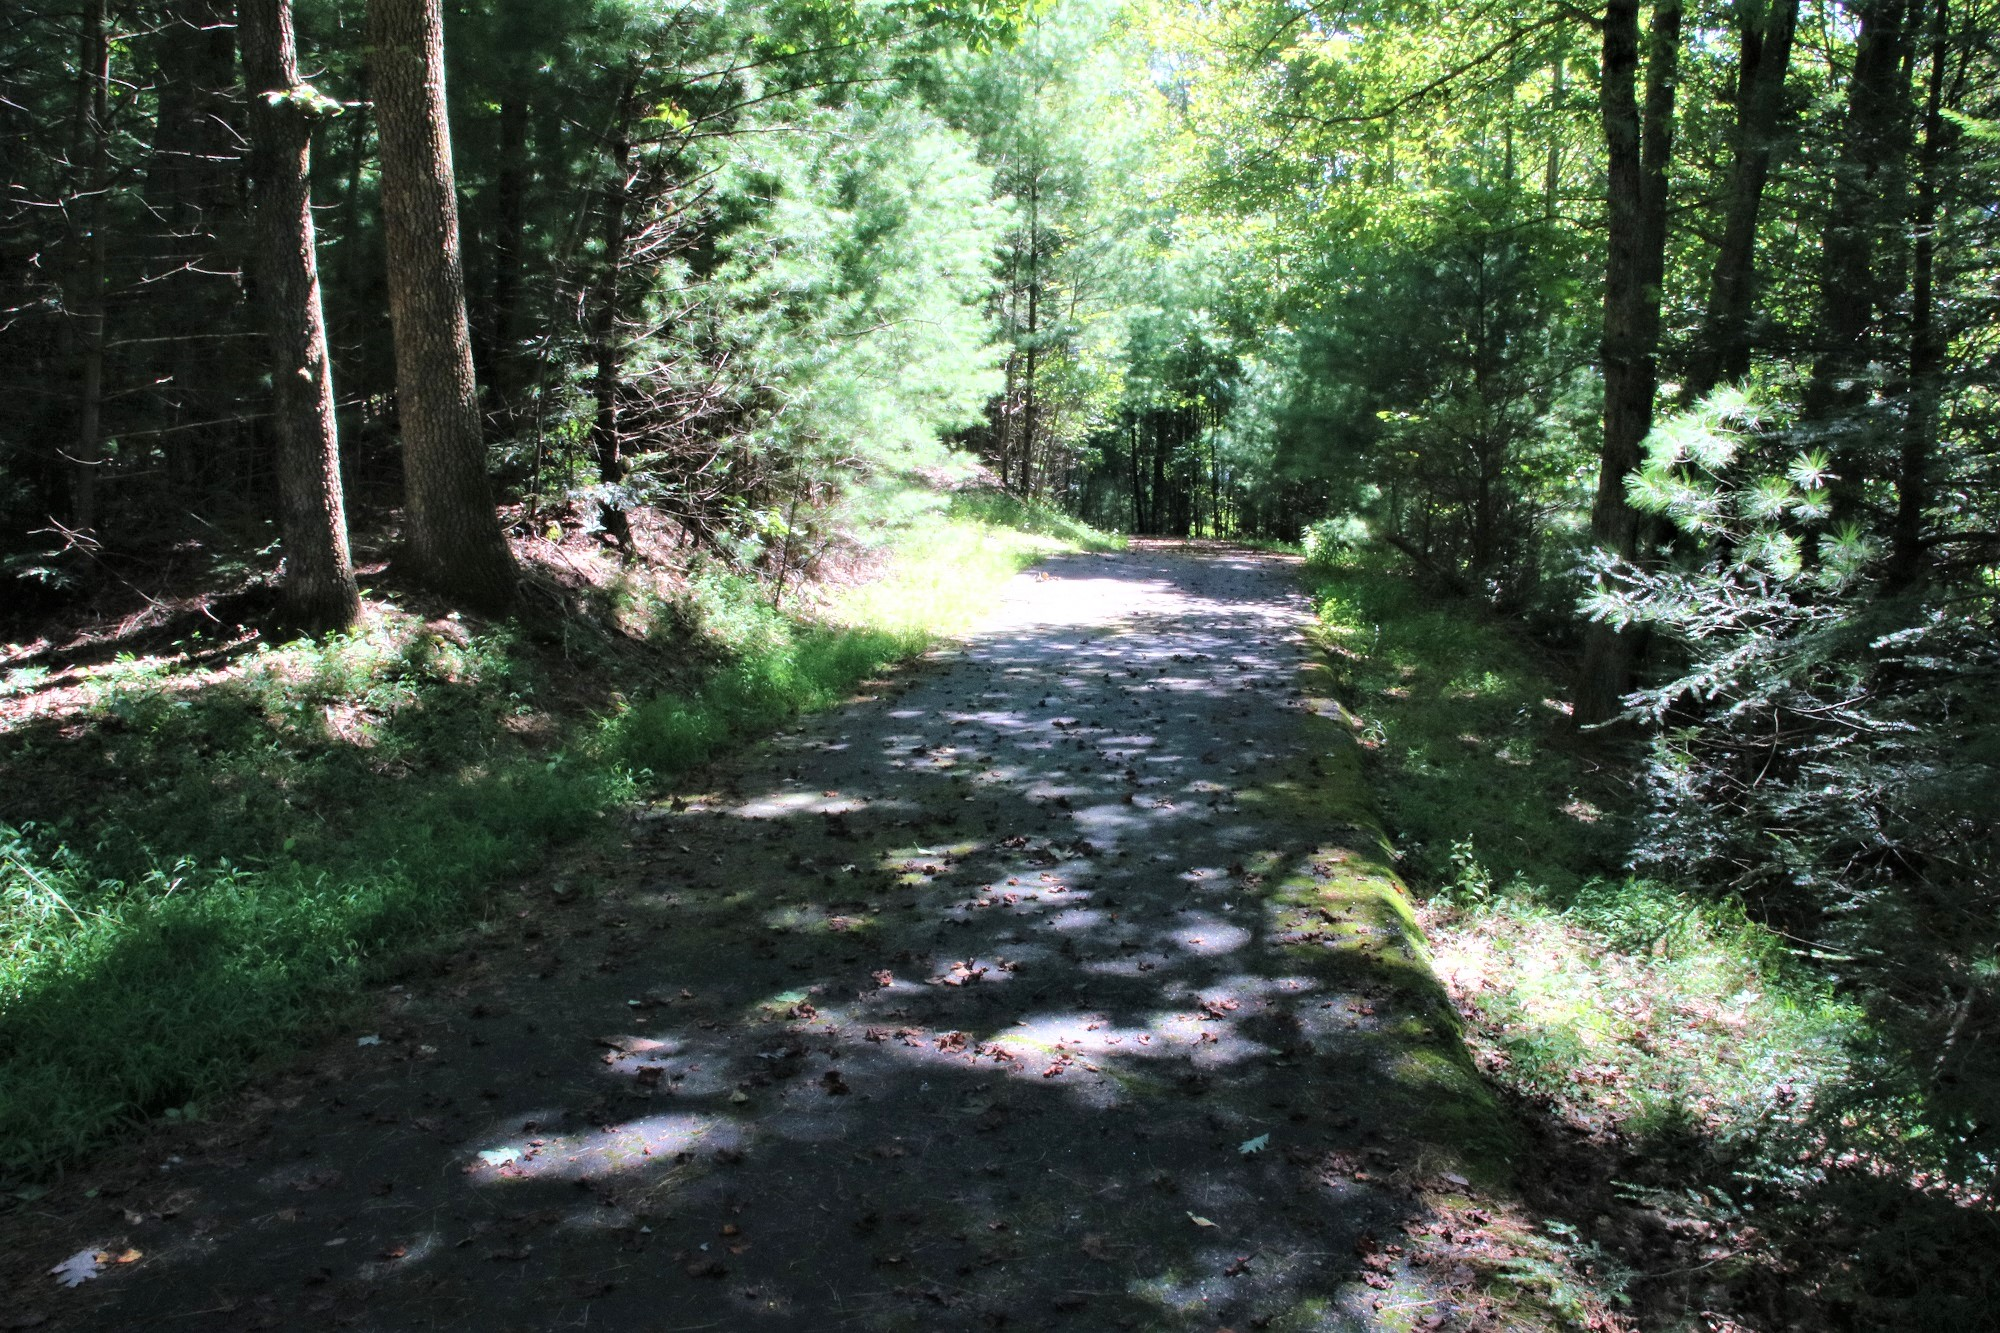 260 GRANNY'S RIDGE RD. FERGUSON, NC LOT 5 LONG-RANGE MOUNTAIN VIEWS ON LEATHERWOOD MOUNTAIN